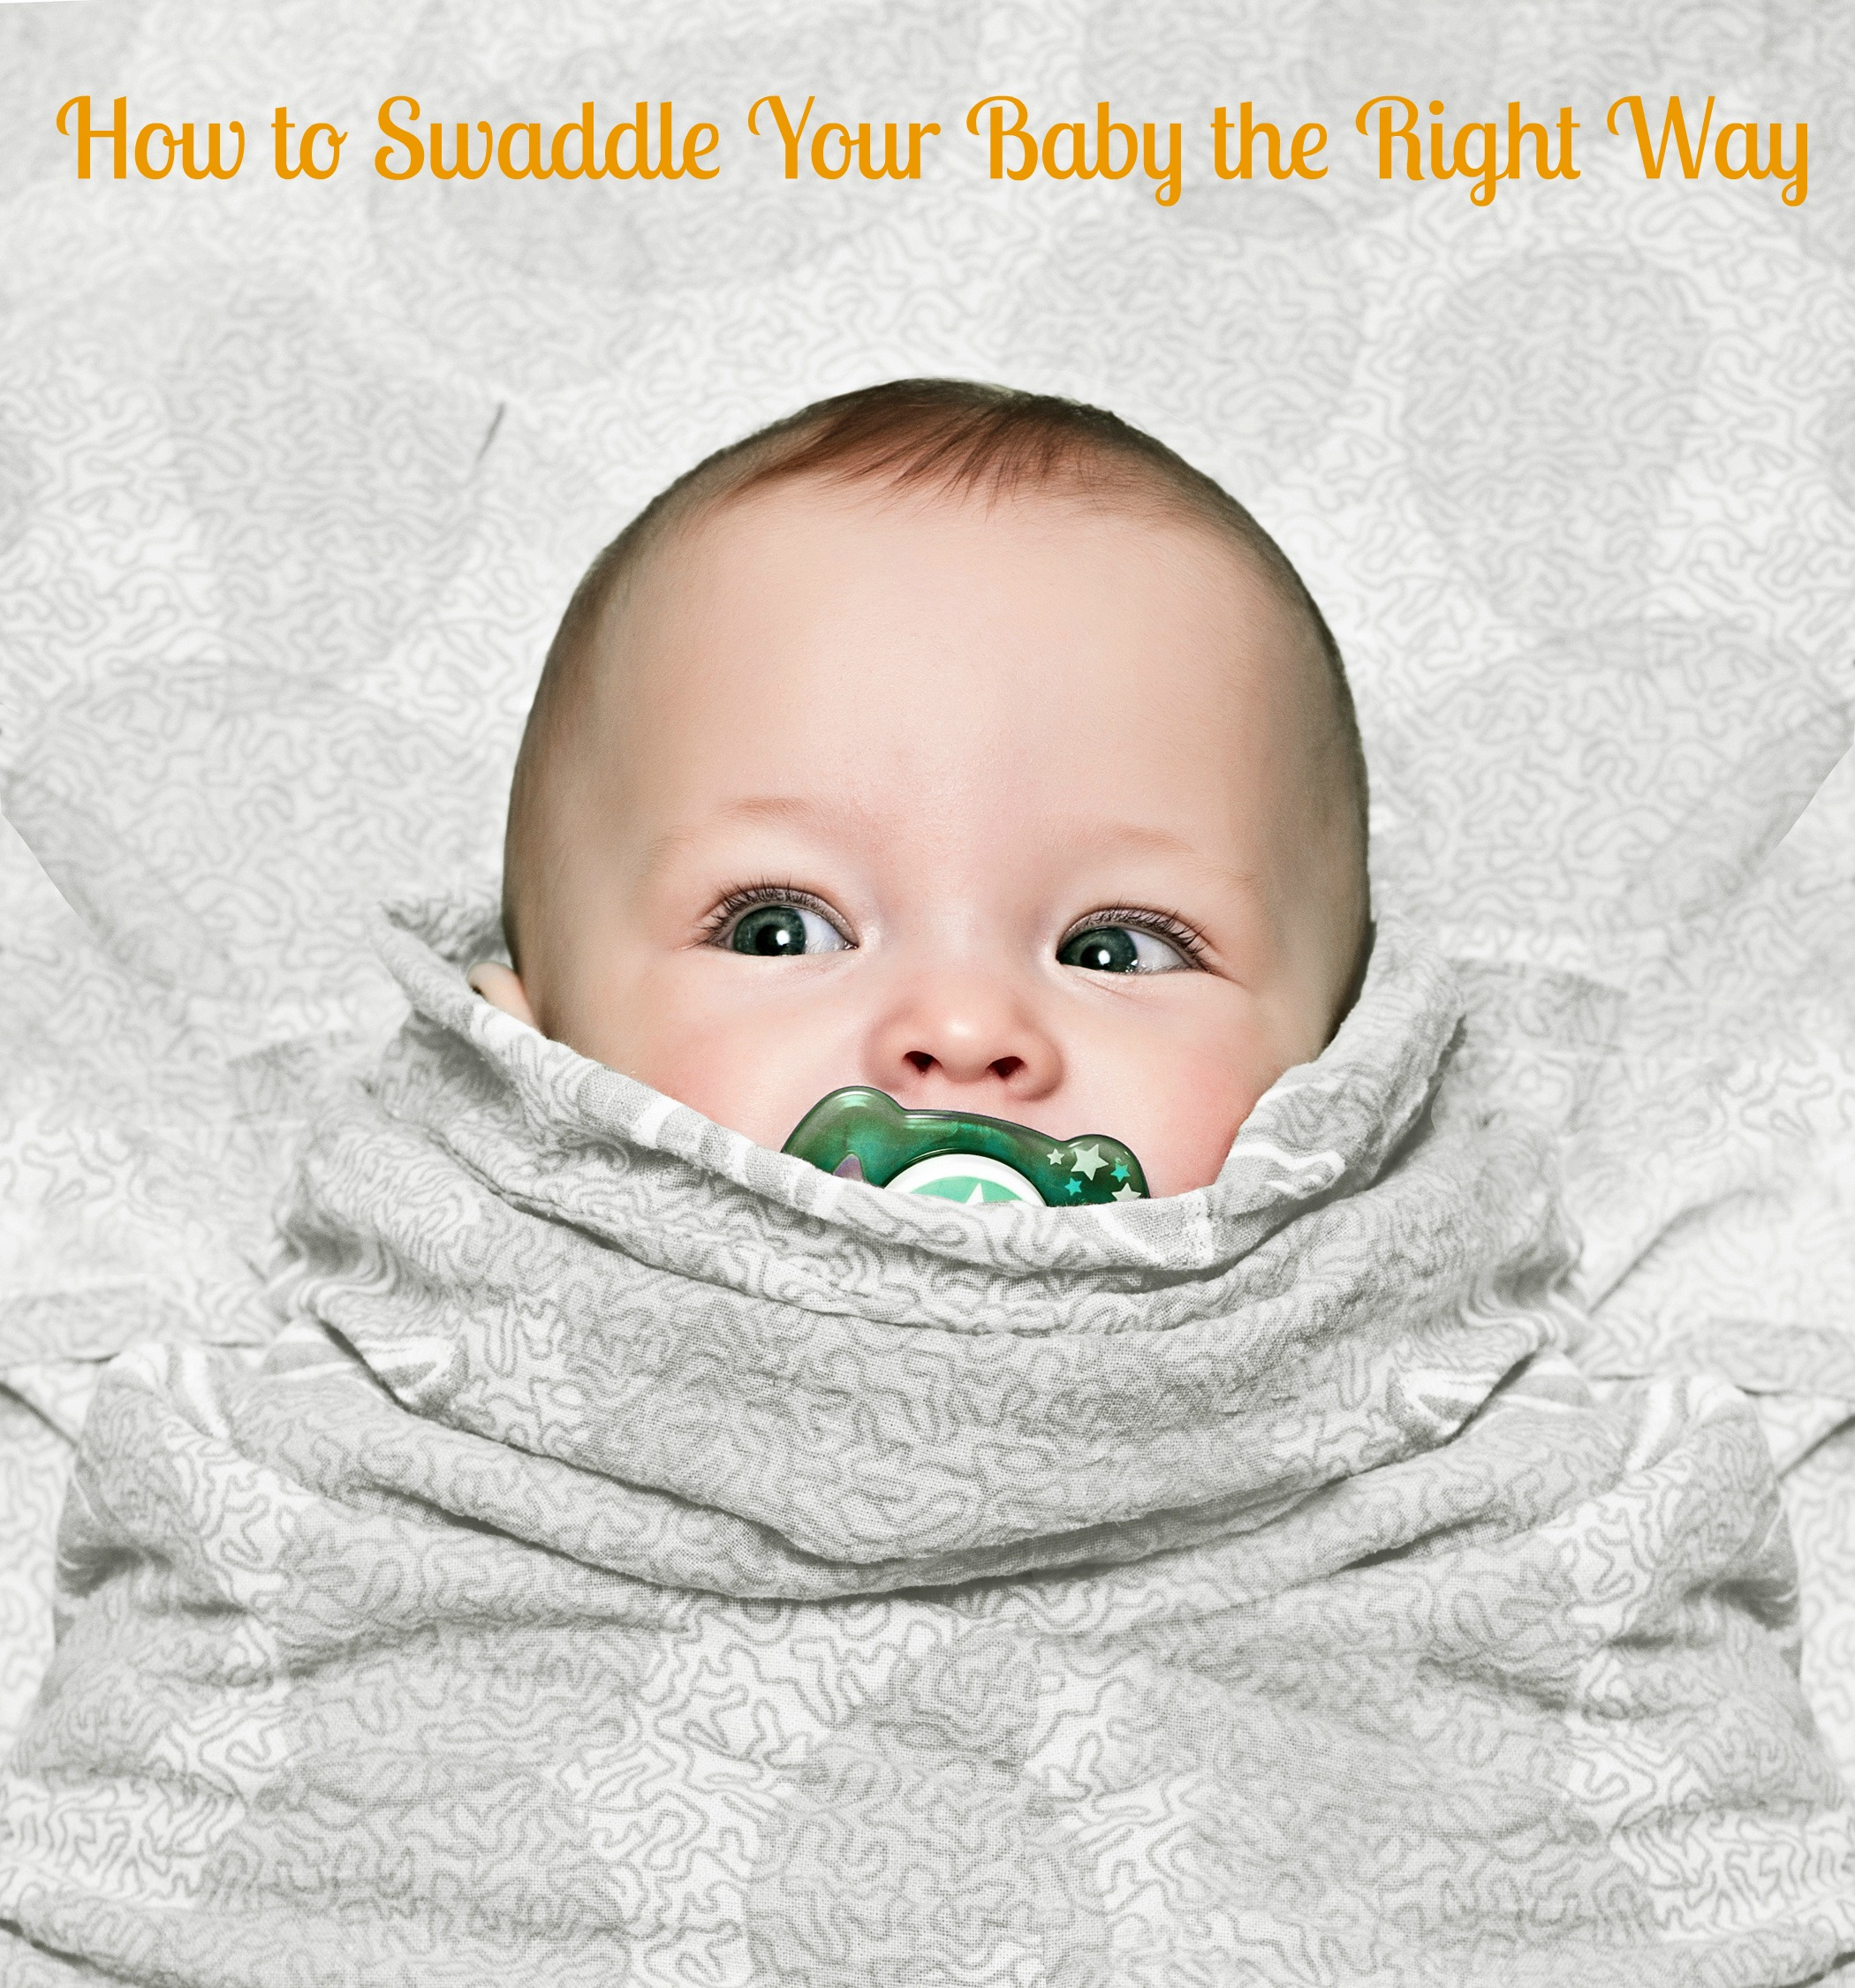 How to Swaddle Your Baby the Right Way